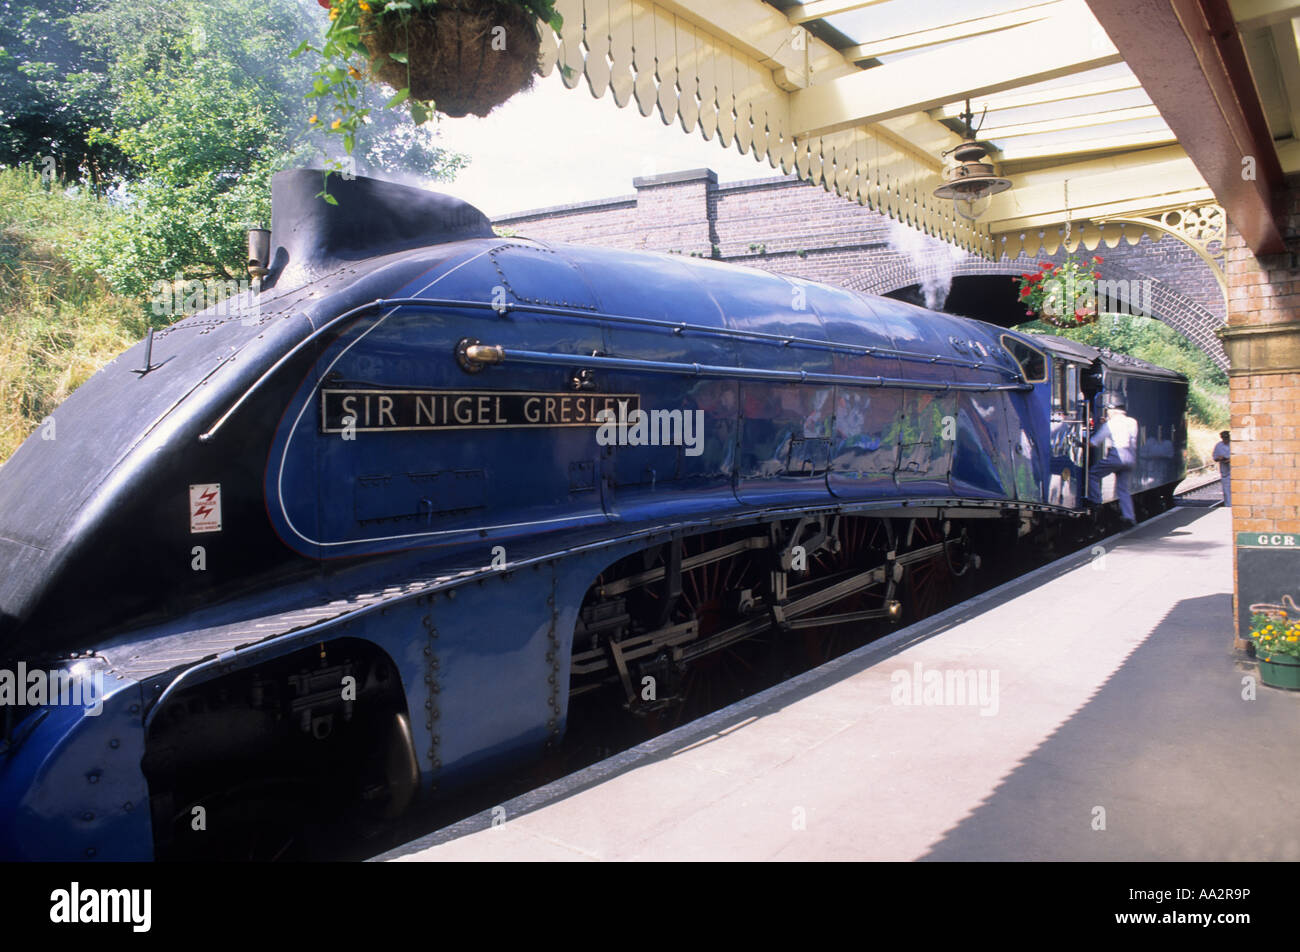 Sir Nigel Gresley Steam Engine Streamline Train Gressley Pacific built 1937 LNER 60007 Rothley Leicestershire English - Stock Image